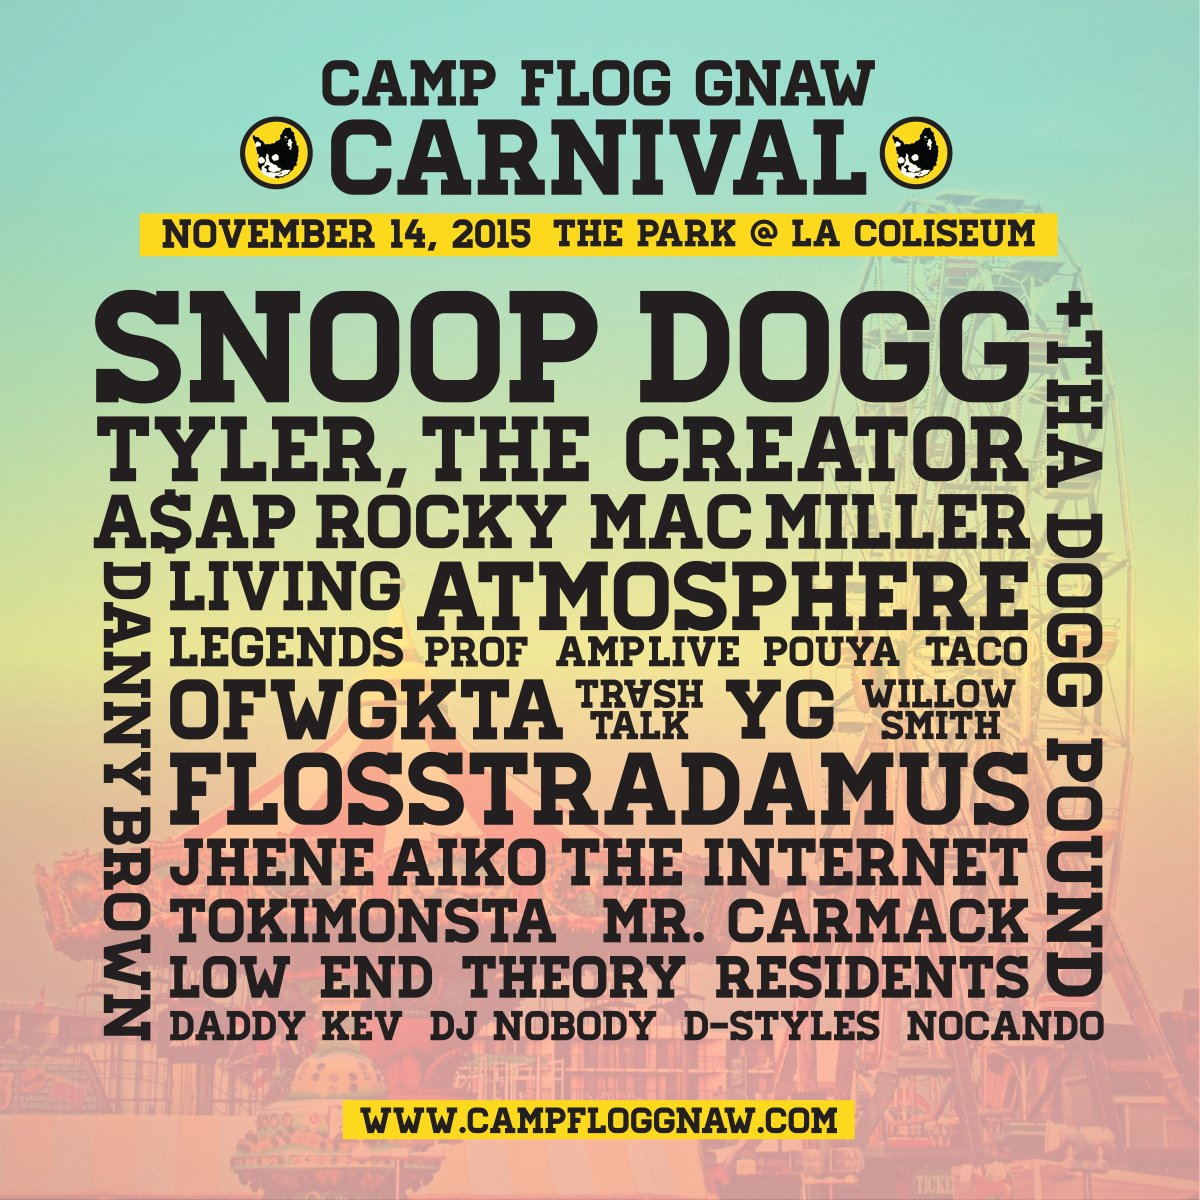 Los Angeles! Do yourself a favor and get tickets for #CampFlogGnaw. You'll thank me later: https://t.co/dhrWOIhUNo https://t.co/prjrZm5QyT